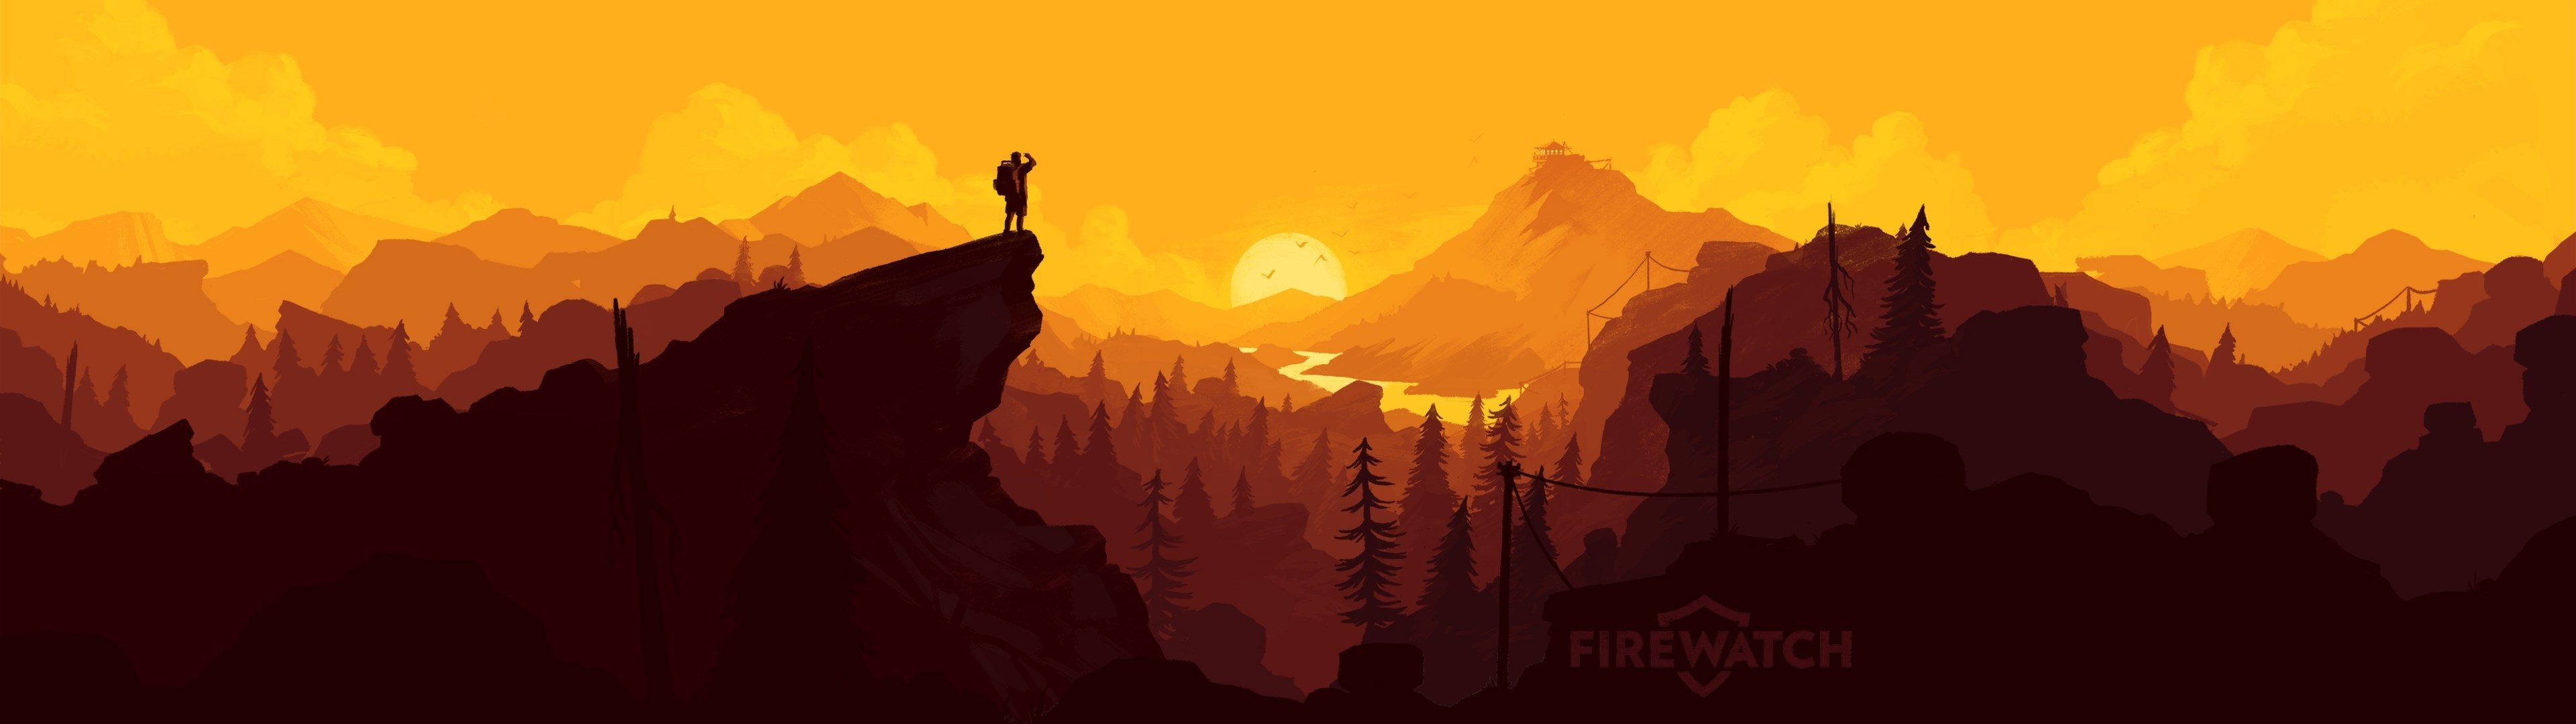 3840x1080 firewatch 4k hd wallpaper | wallpapers and backgronds | Pinterest | Hd wallpaper and ...